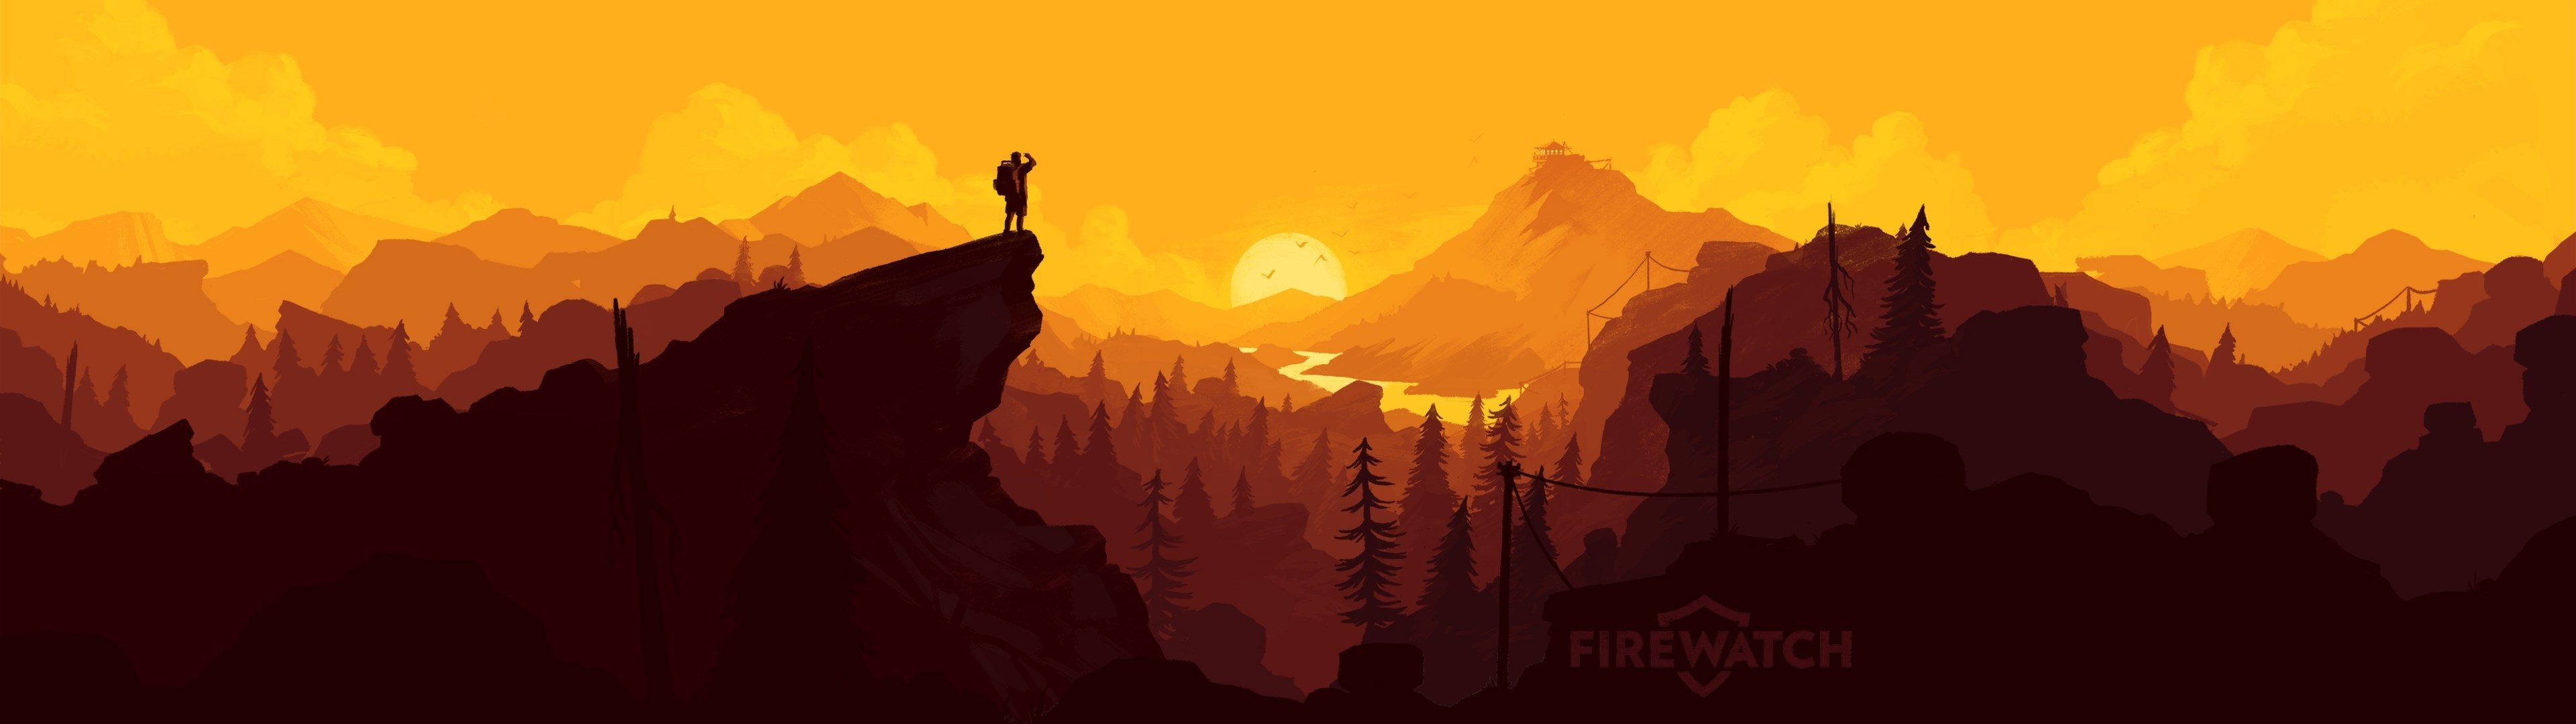 3840x1080 firewatch 4k hd wallpaper | wallpapers and backgronds | Pinterest | Hd wallpaper and ...